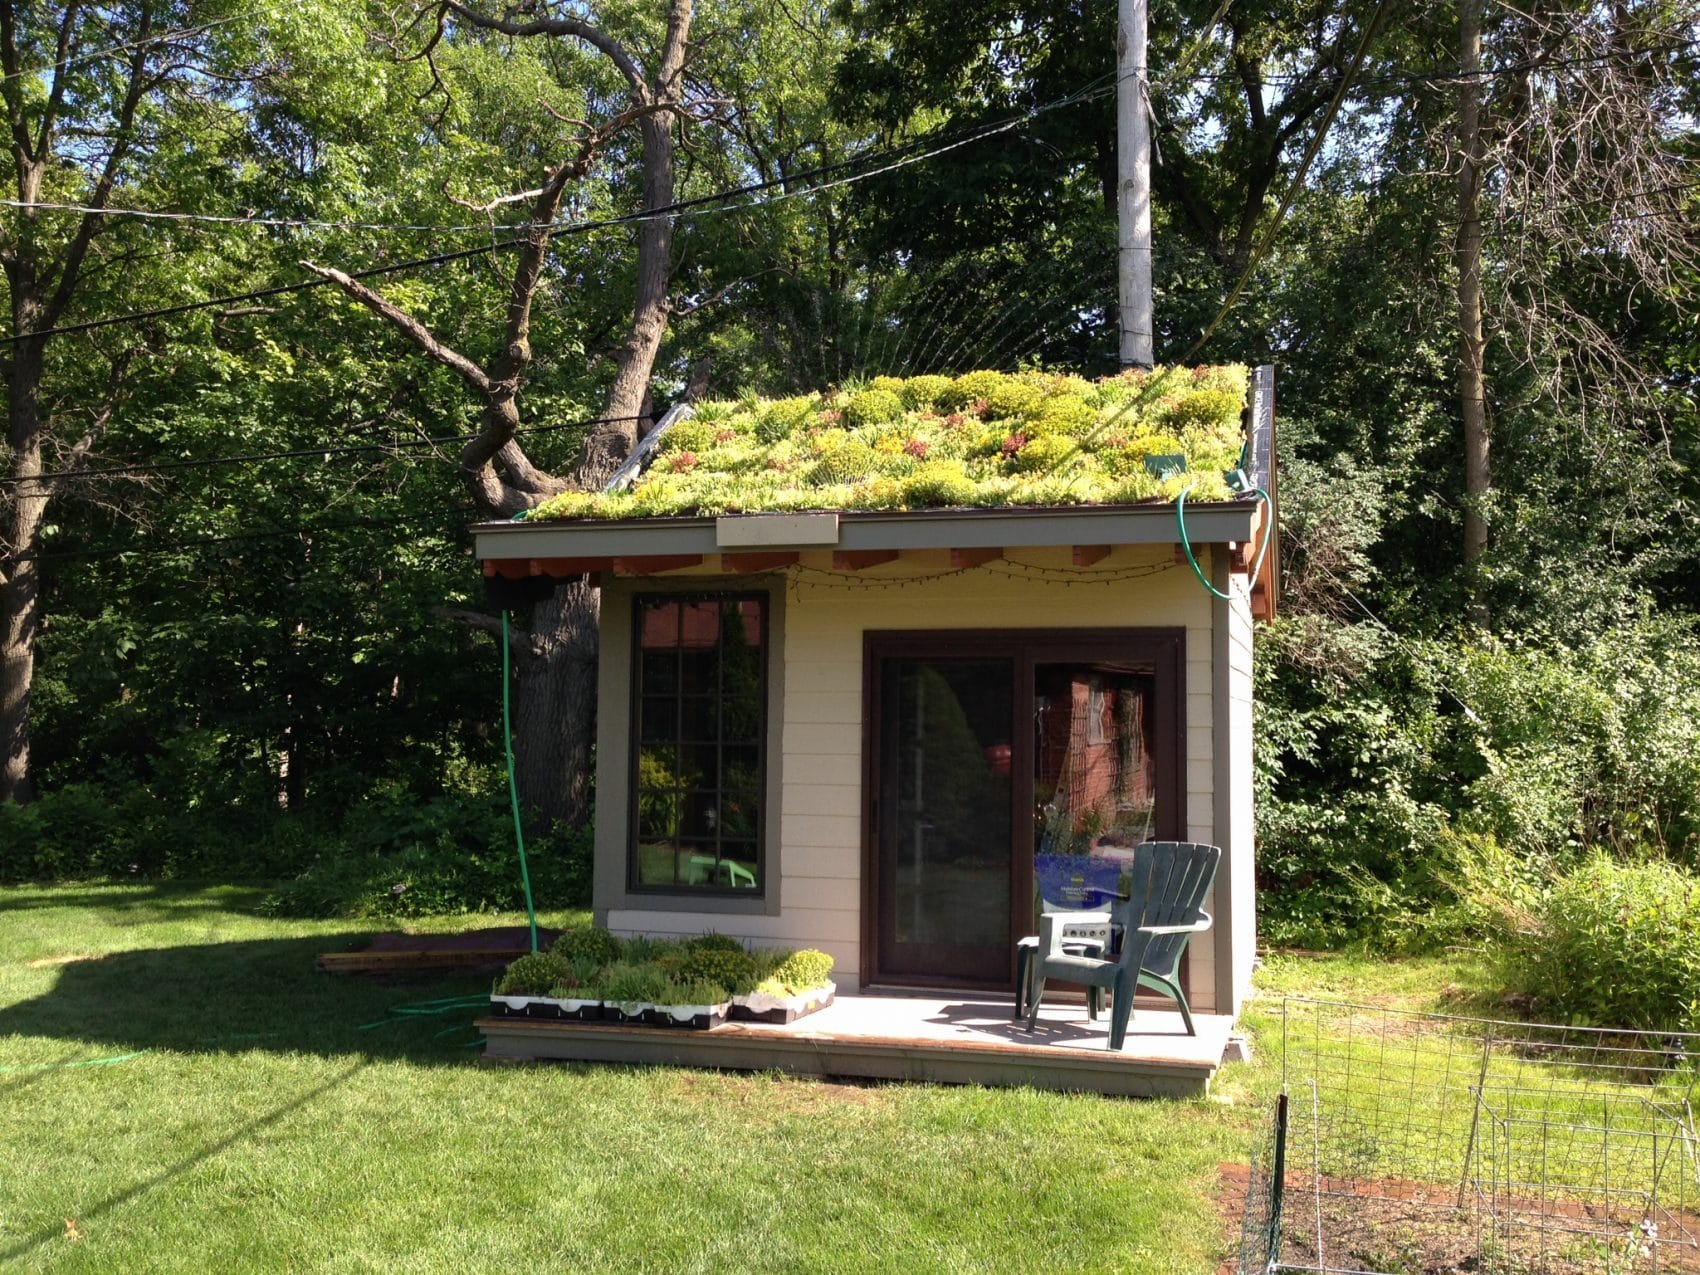 green roof plants installed